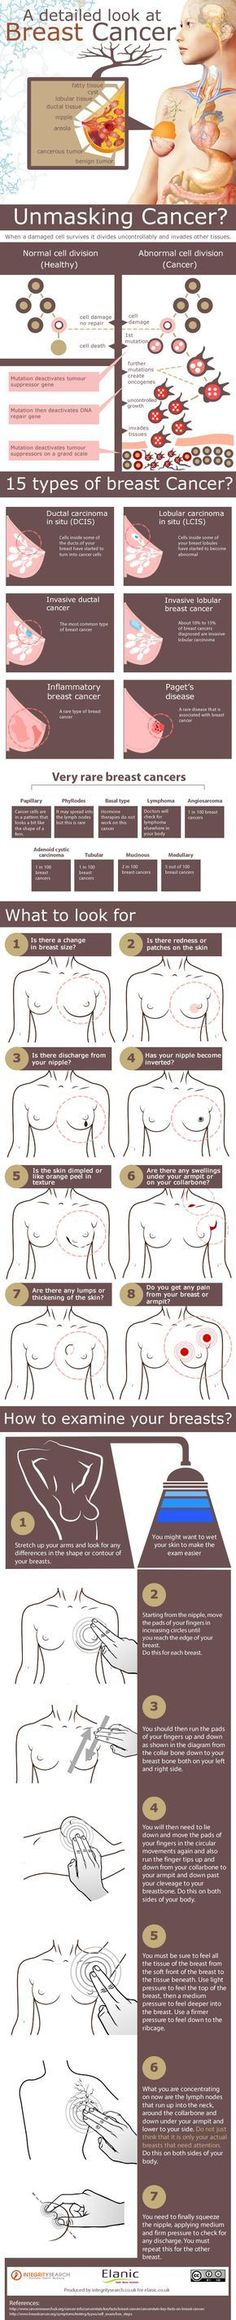 A Detailed Look at Breast Cancer Did you know there are 15 types of breast cancer? Infographic that shows you what to look for and how to examine your breasts.